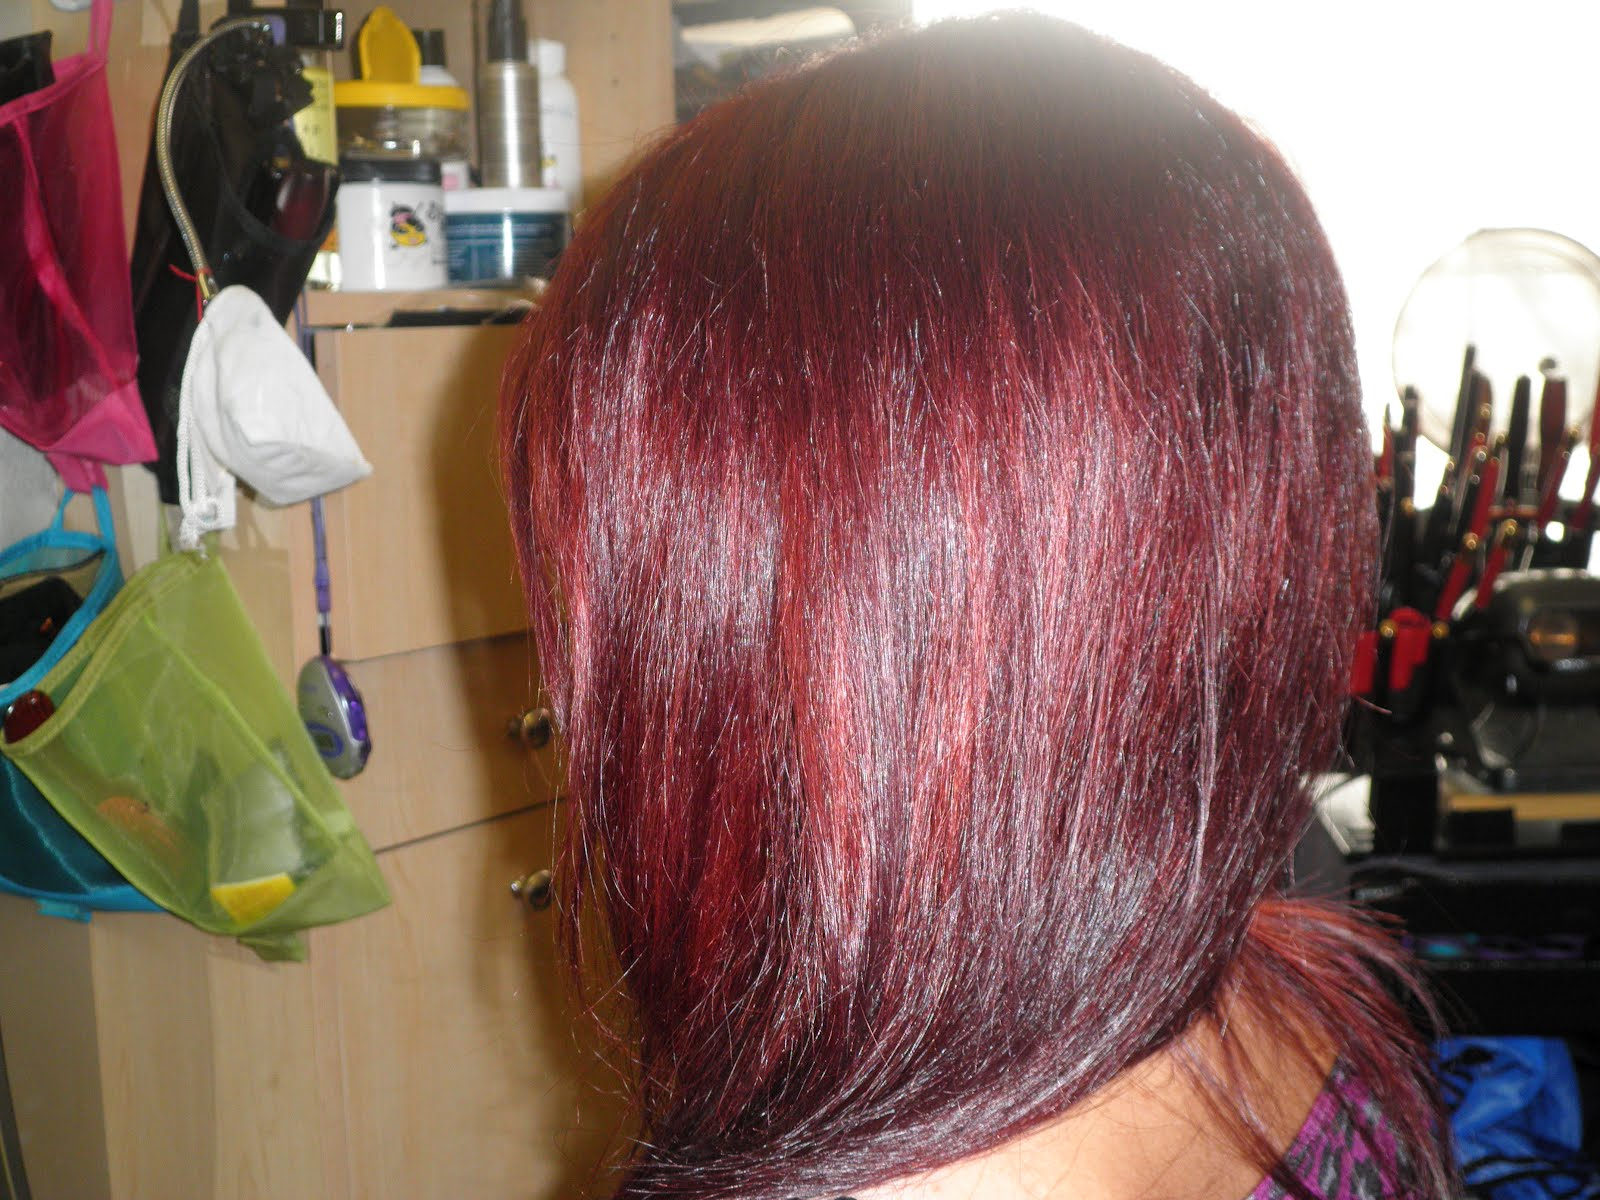 Phenomenalhaircare Hair Extensions 24 Inches Exotic Length